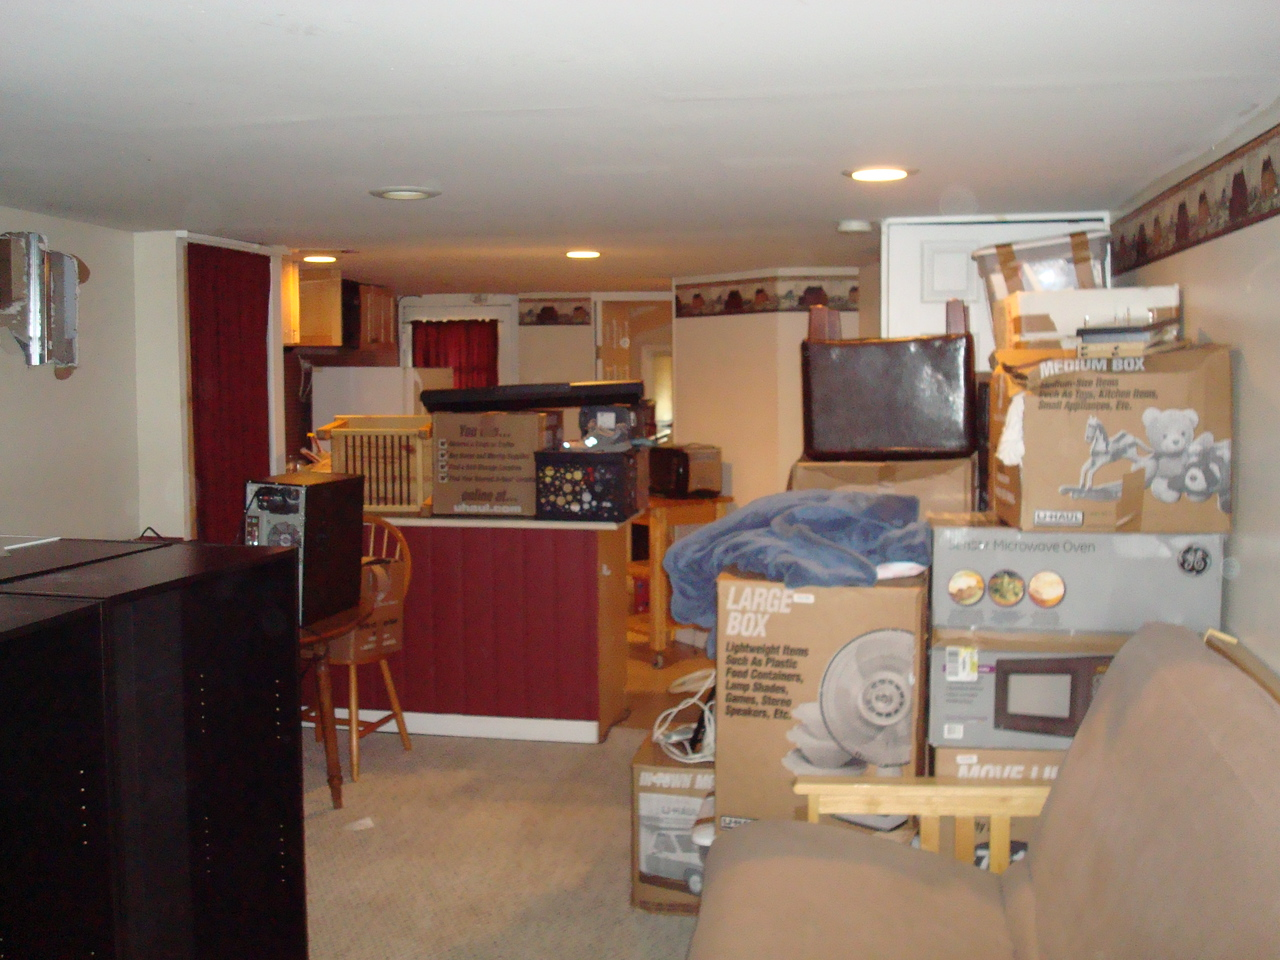 My new apartment after the movers came